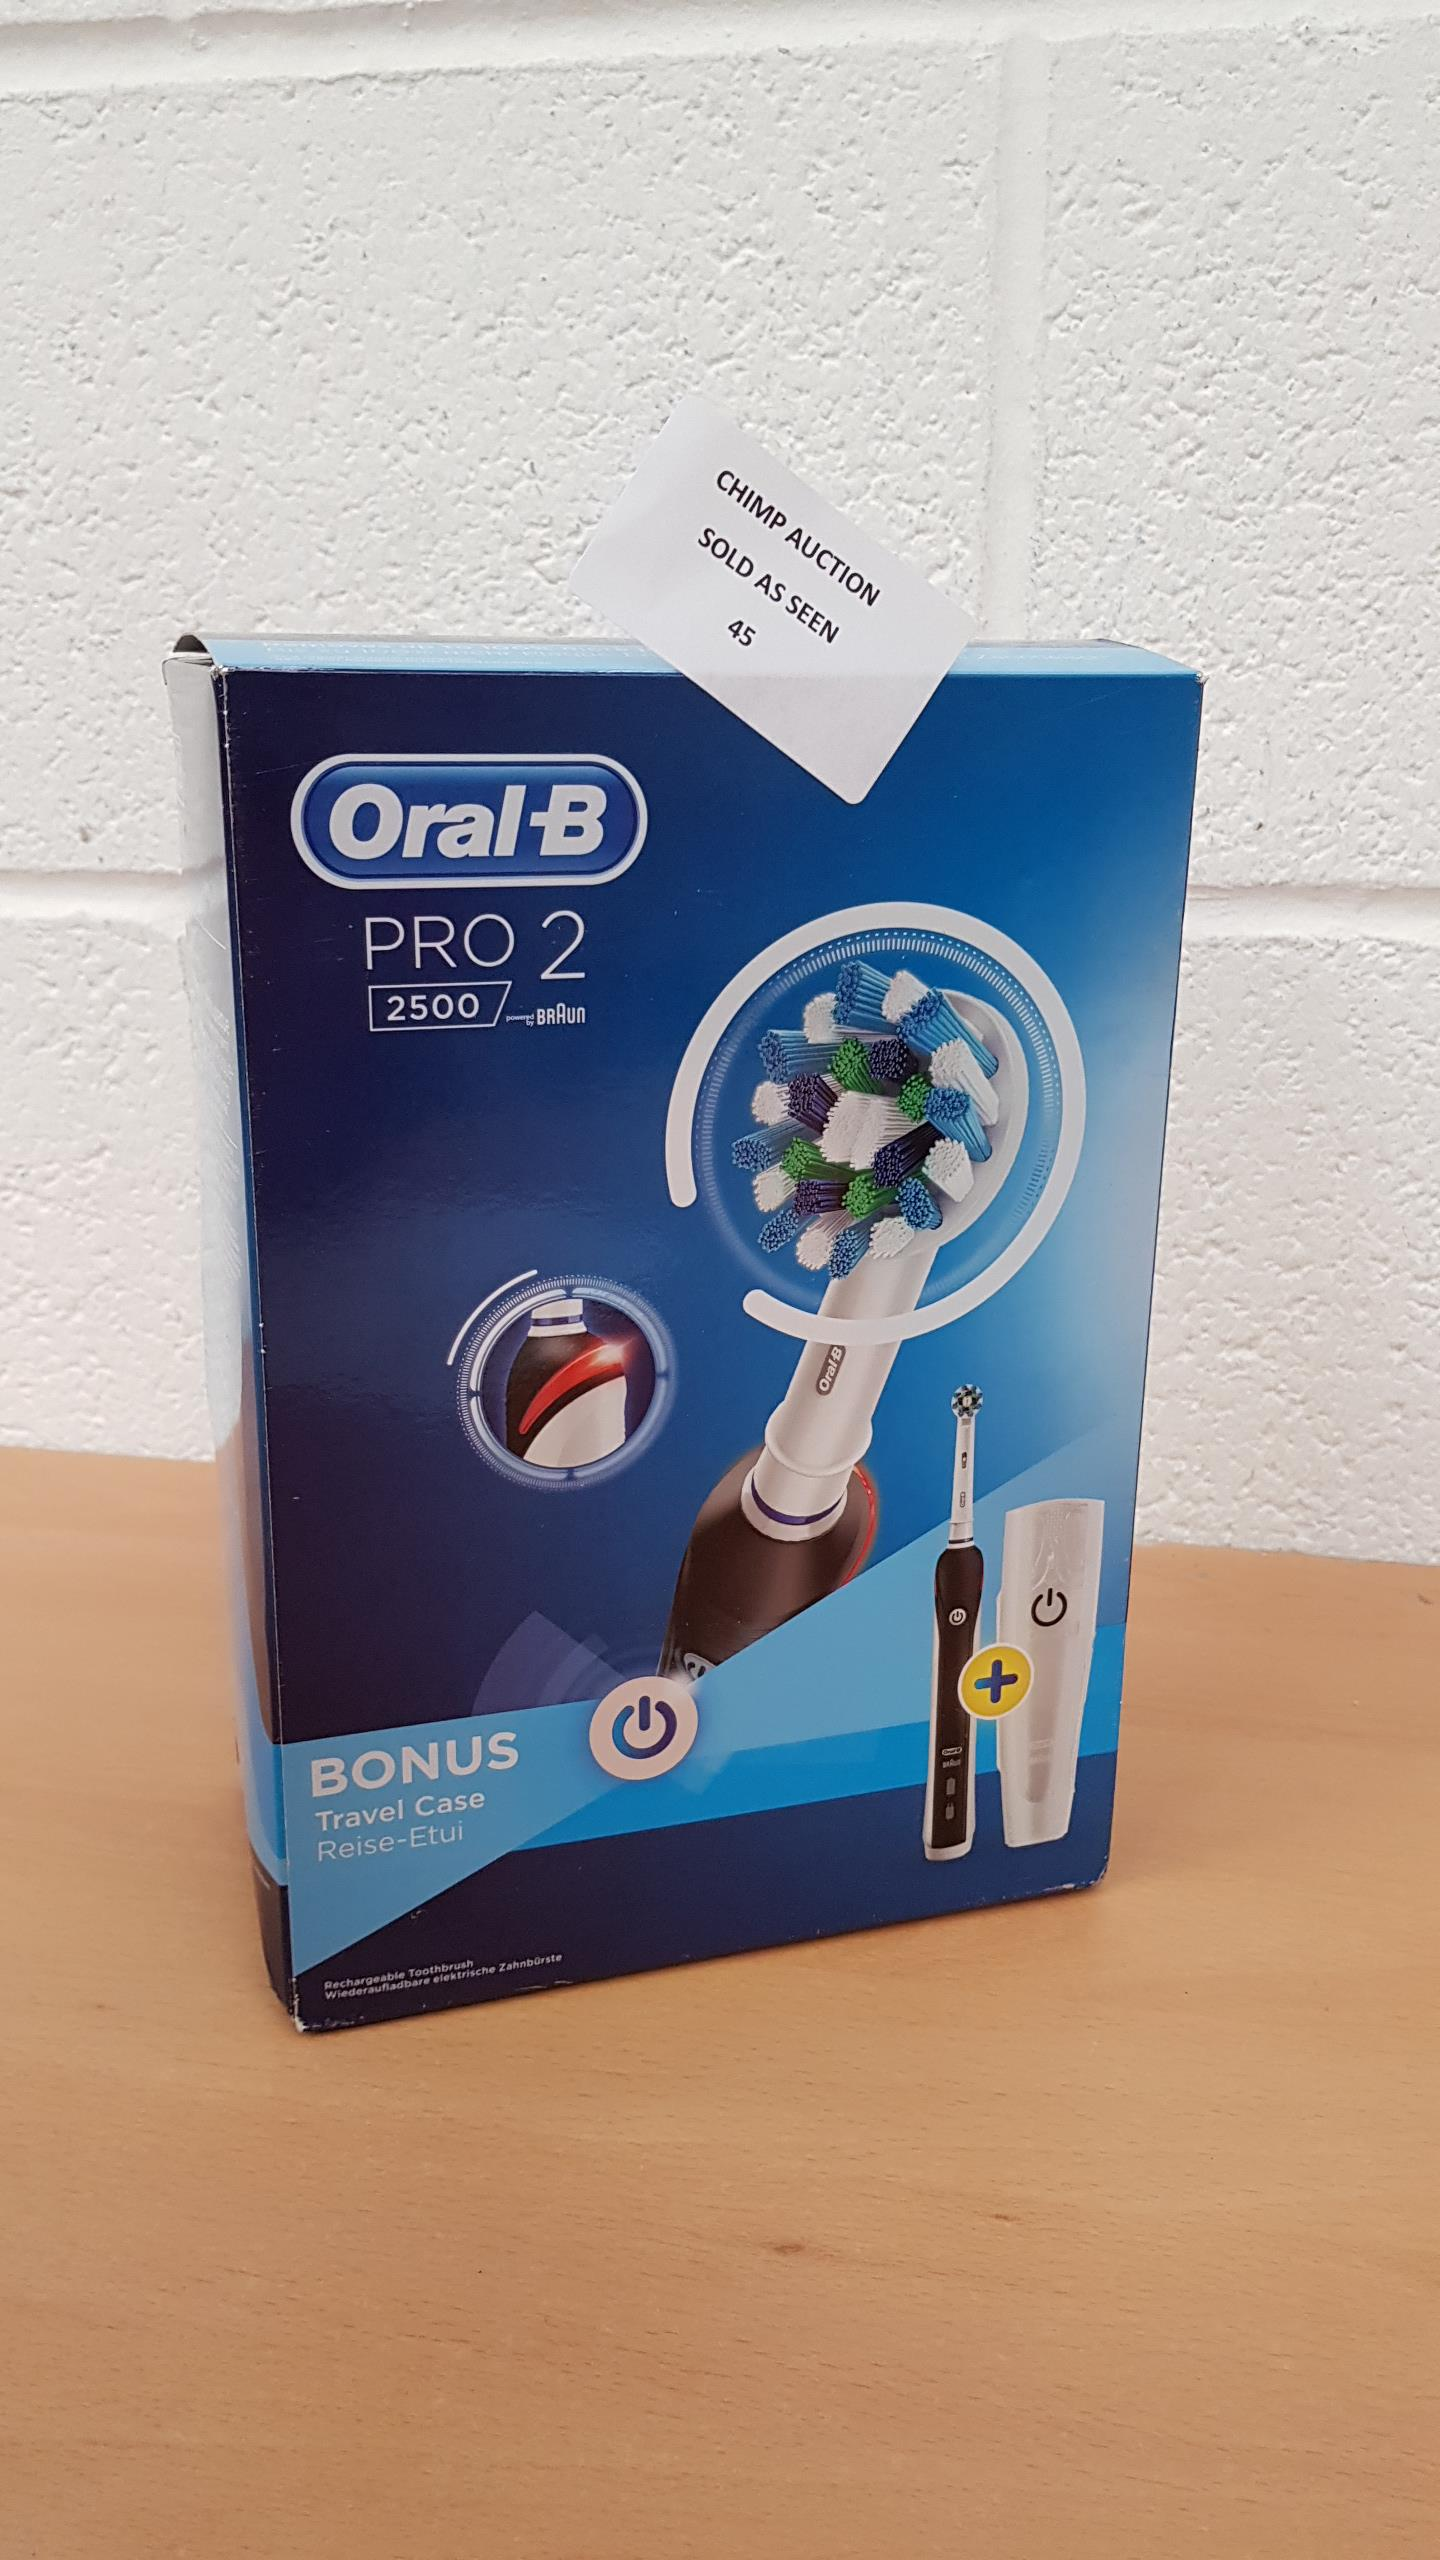 Lot 45 - Oral-B Pro 2 2500 electric toothbrush RRP £79.99. 6f1a818e09c7